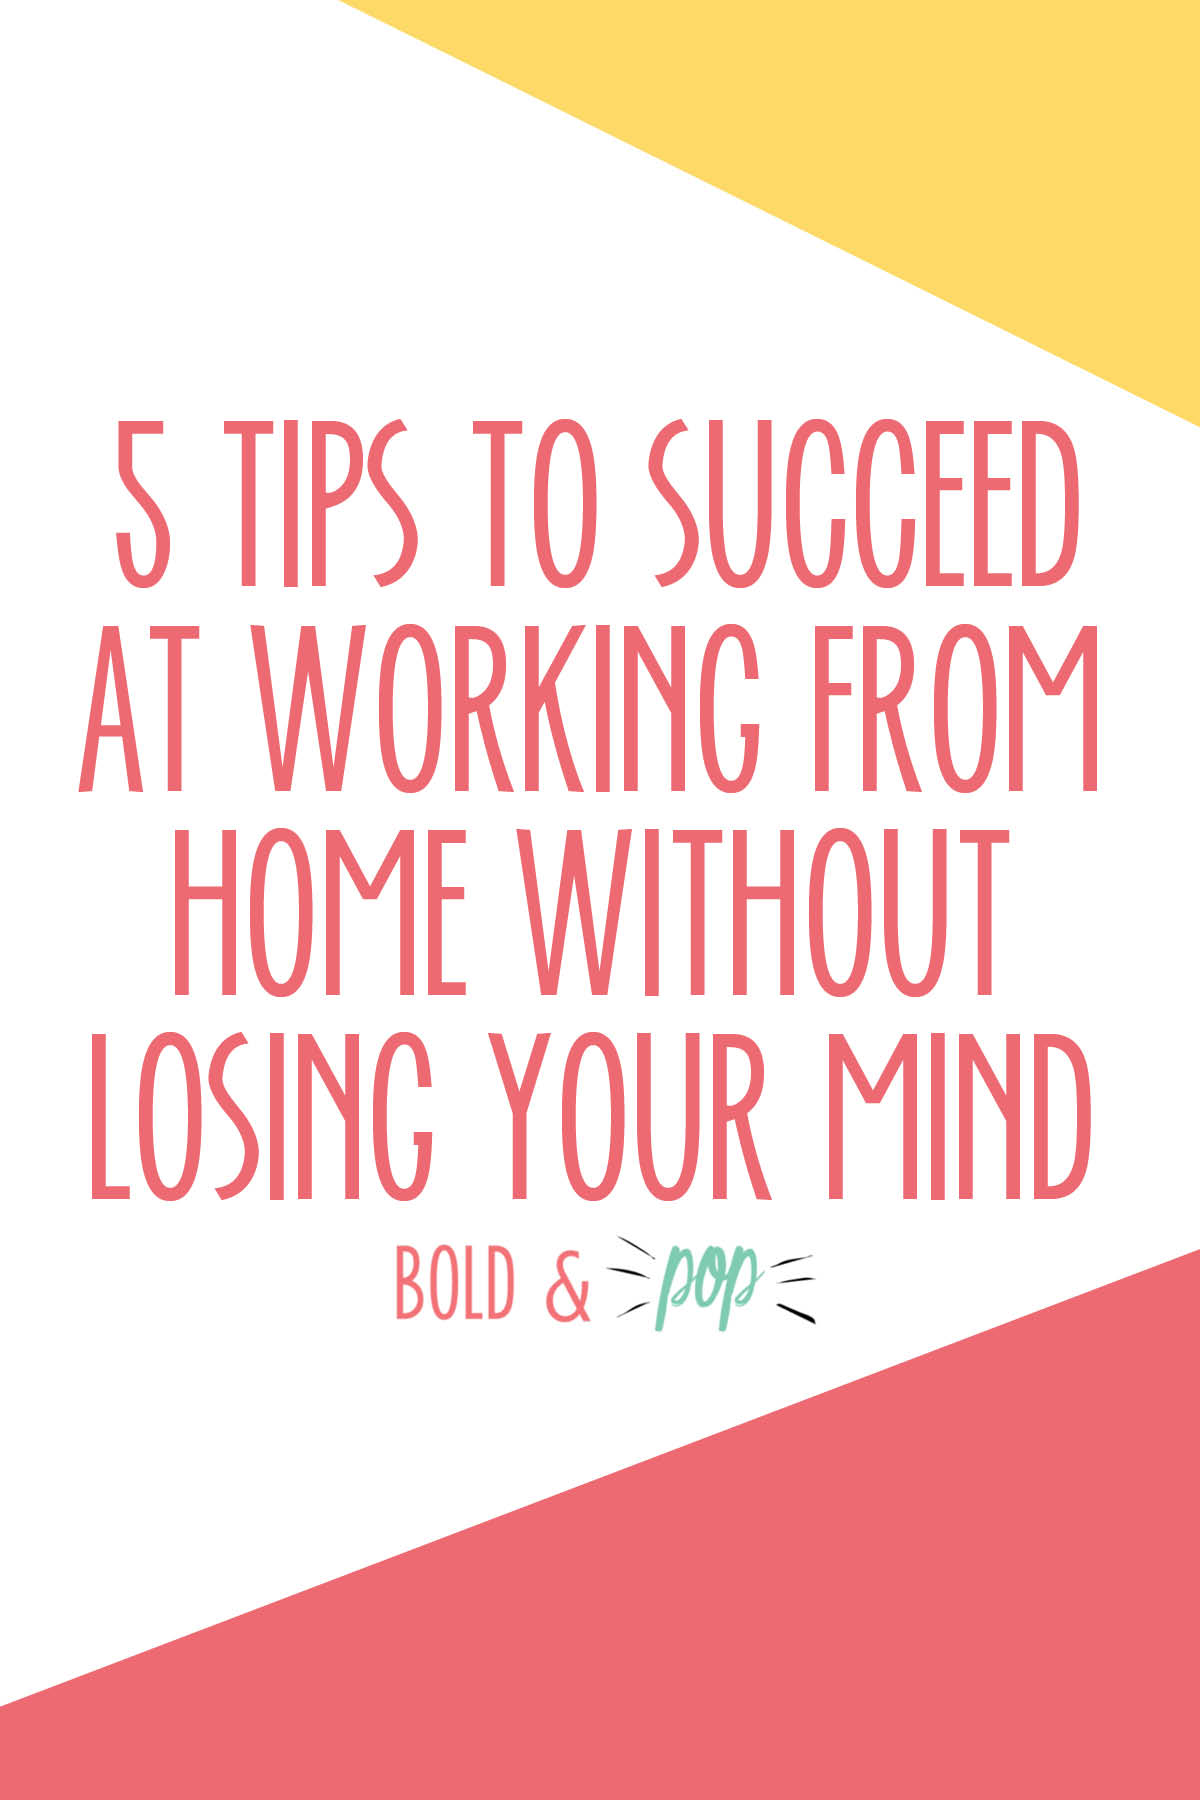 Bold & Pop : 5 Tips to Succeed at Working from Home Without Losing Your Mind